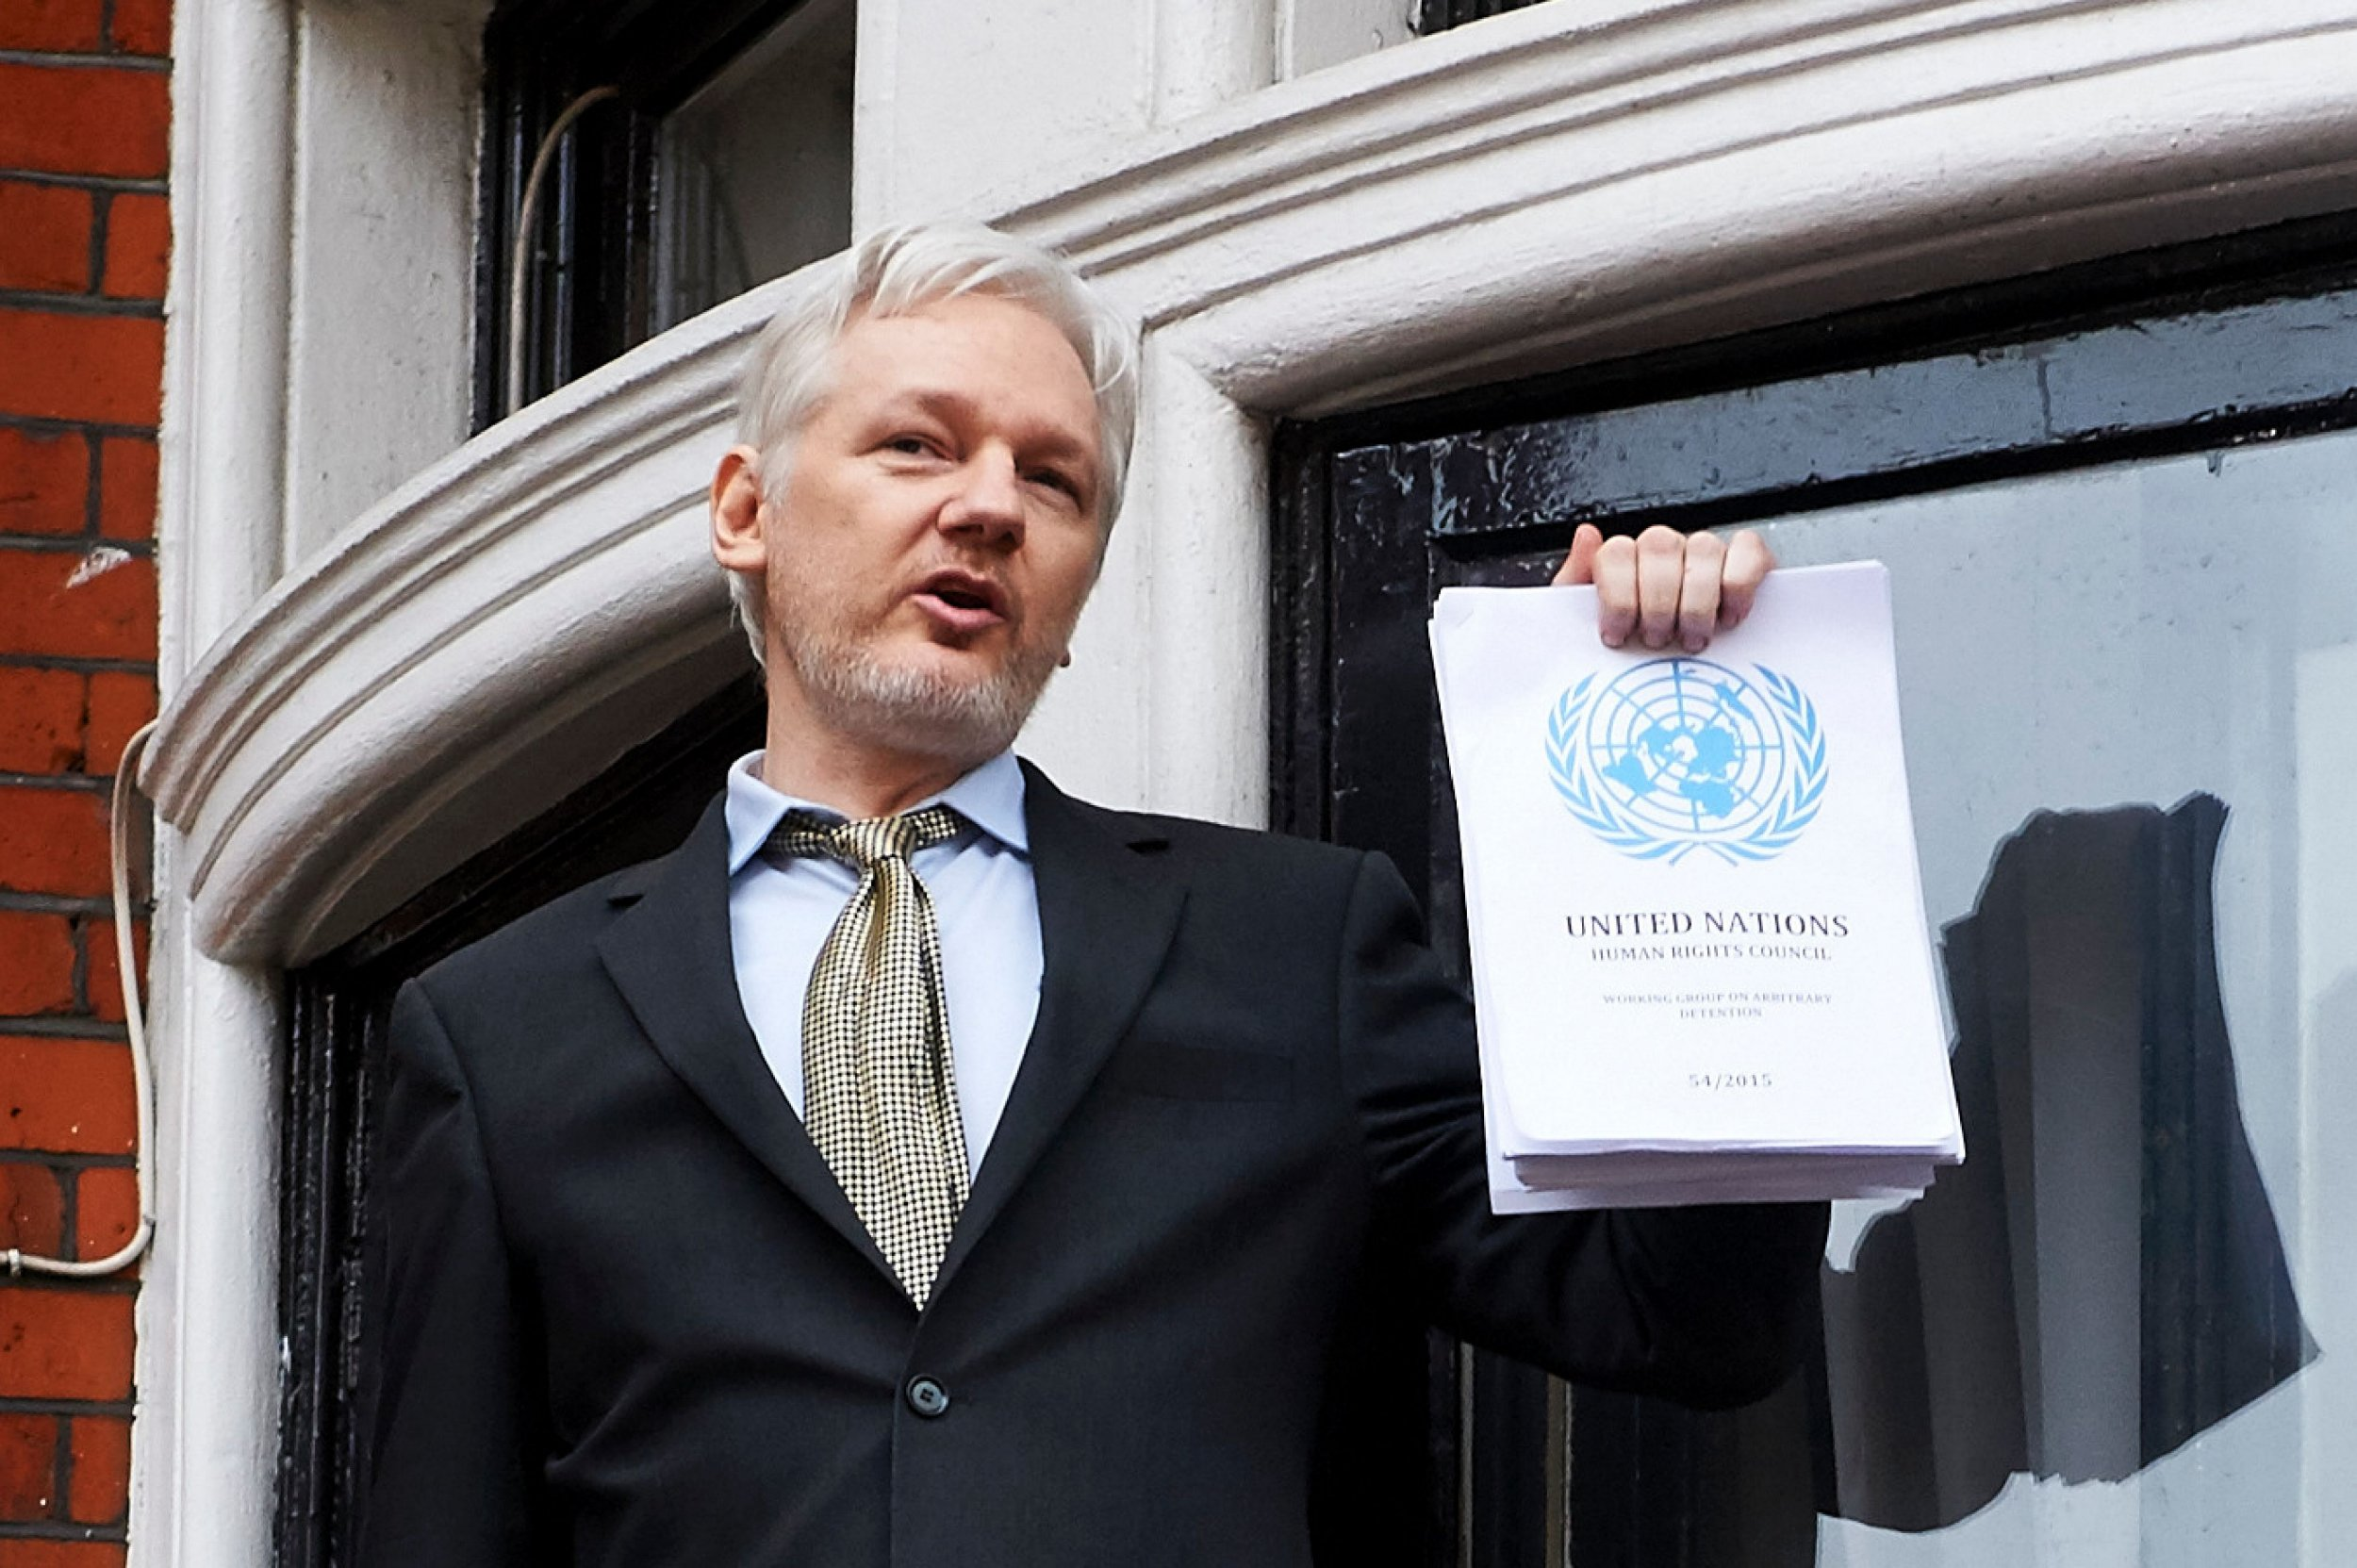 """WikiLeaks founder Julian Assange addresses the media holding a printed report of the judgement of the UN's Working Group on Arbitrary Detention on his case from the balcony of the Ecuadorian embassy in central London on February 5, 2016.nDuring a press conference on February 5 Julian Assange, speaking via video-link, called for Britain and Sweden to """"implement"""" a UN panel finding saying that he should be able to walk free from Ecuador's embassy, where he has lived in self-imposed confinement since 2012. / AFP / NIKLAS HALLE'N        (Photo credit should read NIKLAS HALLE'N/AFP/Getty Images)"""